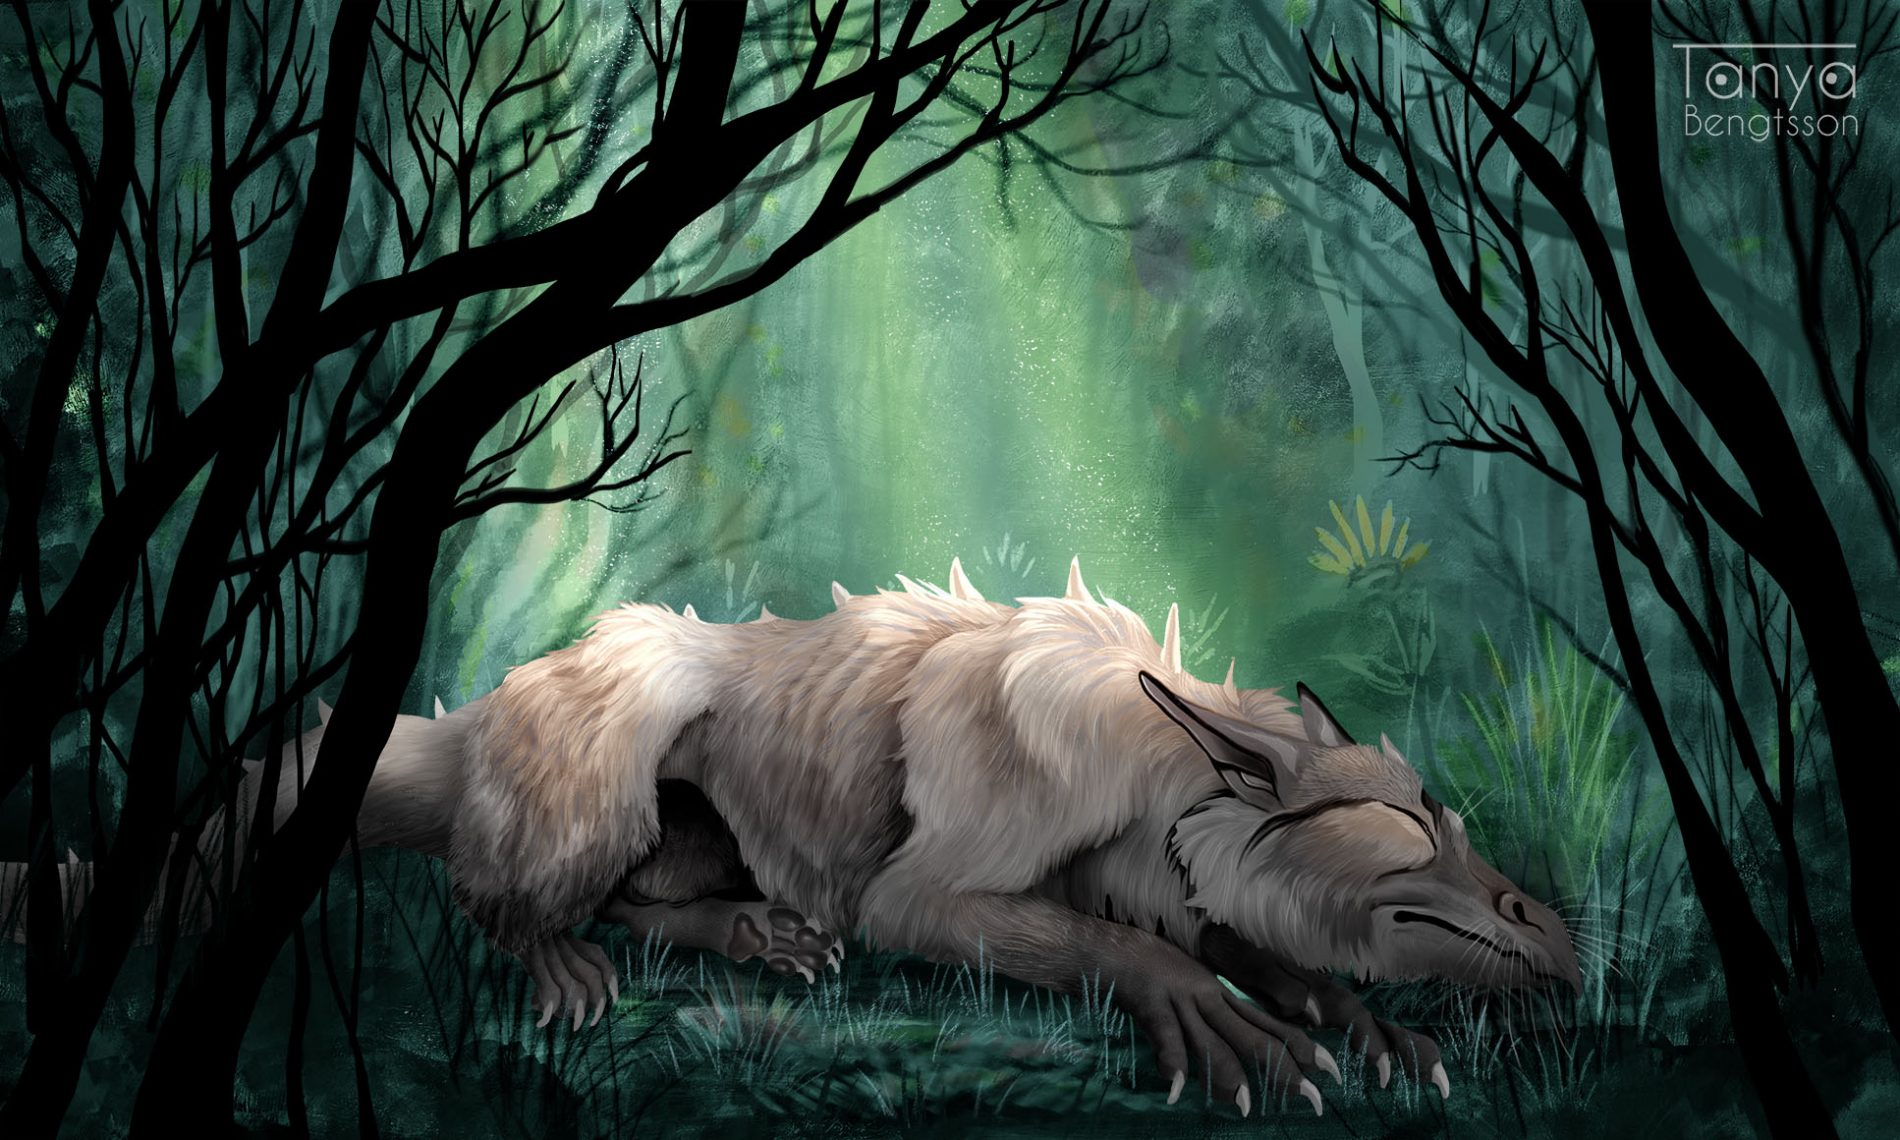 Painting made in Photoshop of a dragon sleeping in the forest.